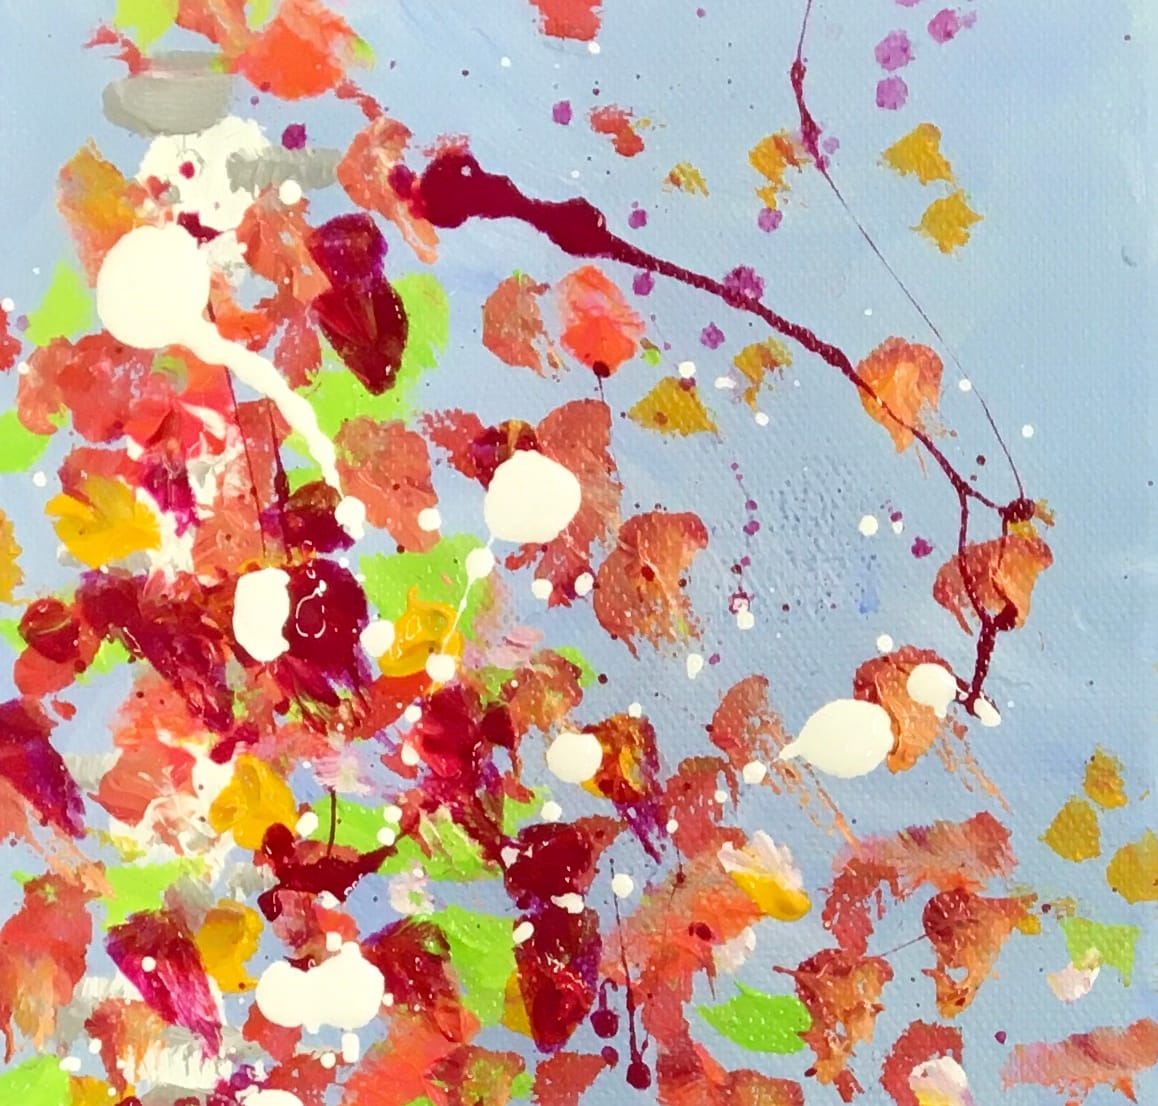 Fall Confetti no.1 by Julea Boswell